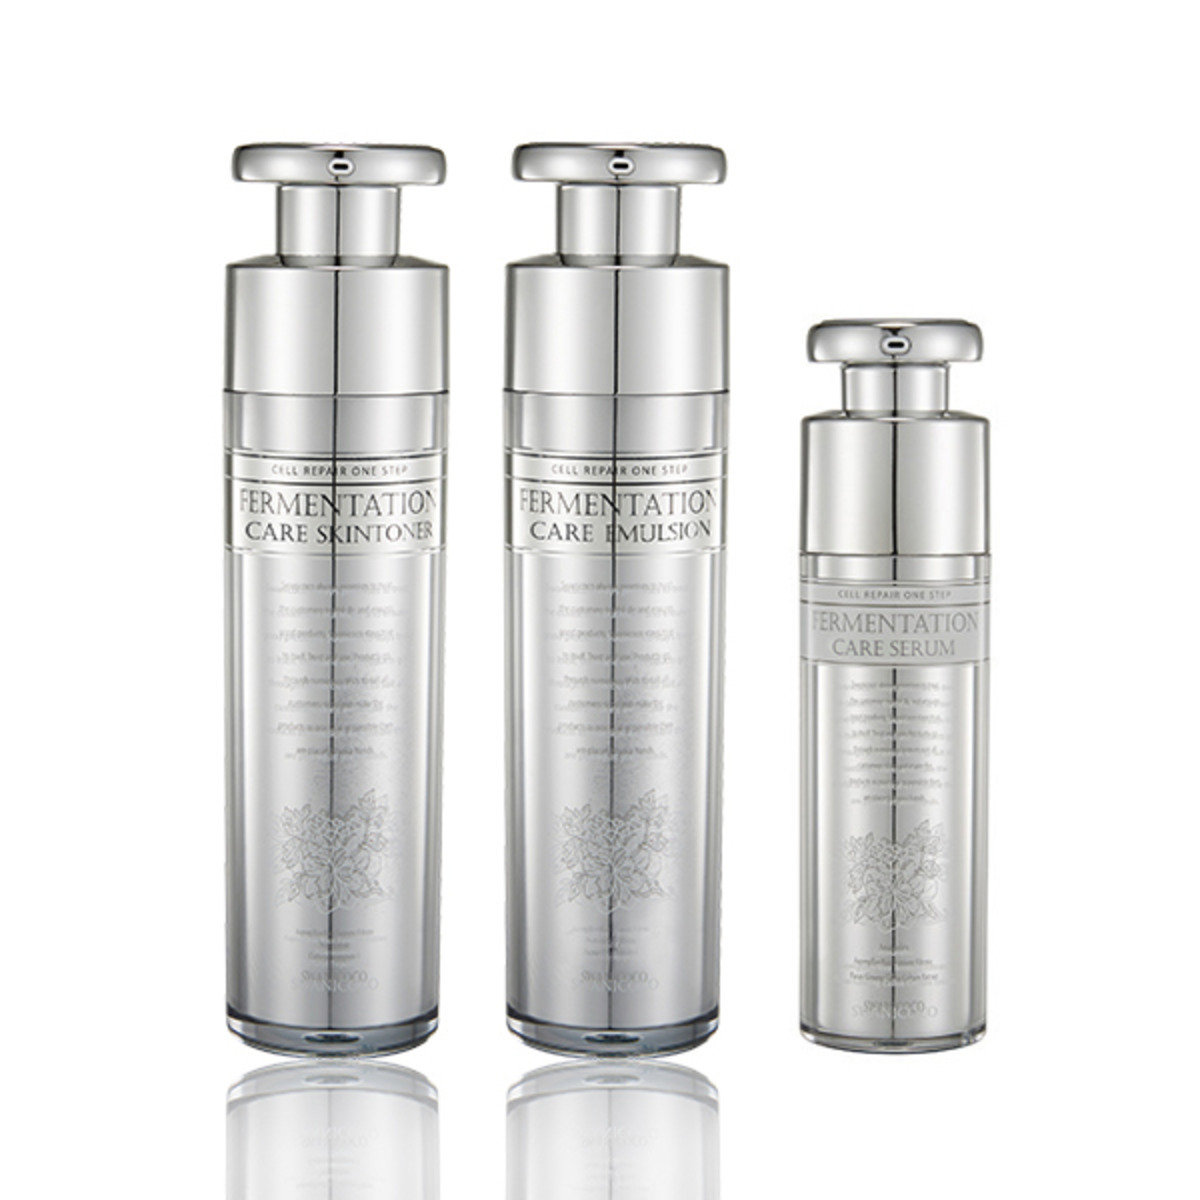 Fermentation Care Silver Skintoner &  Emulsion &  Serum